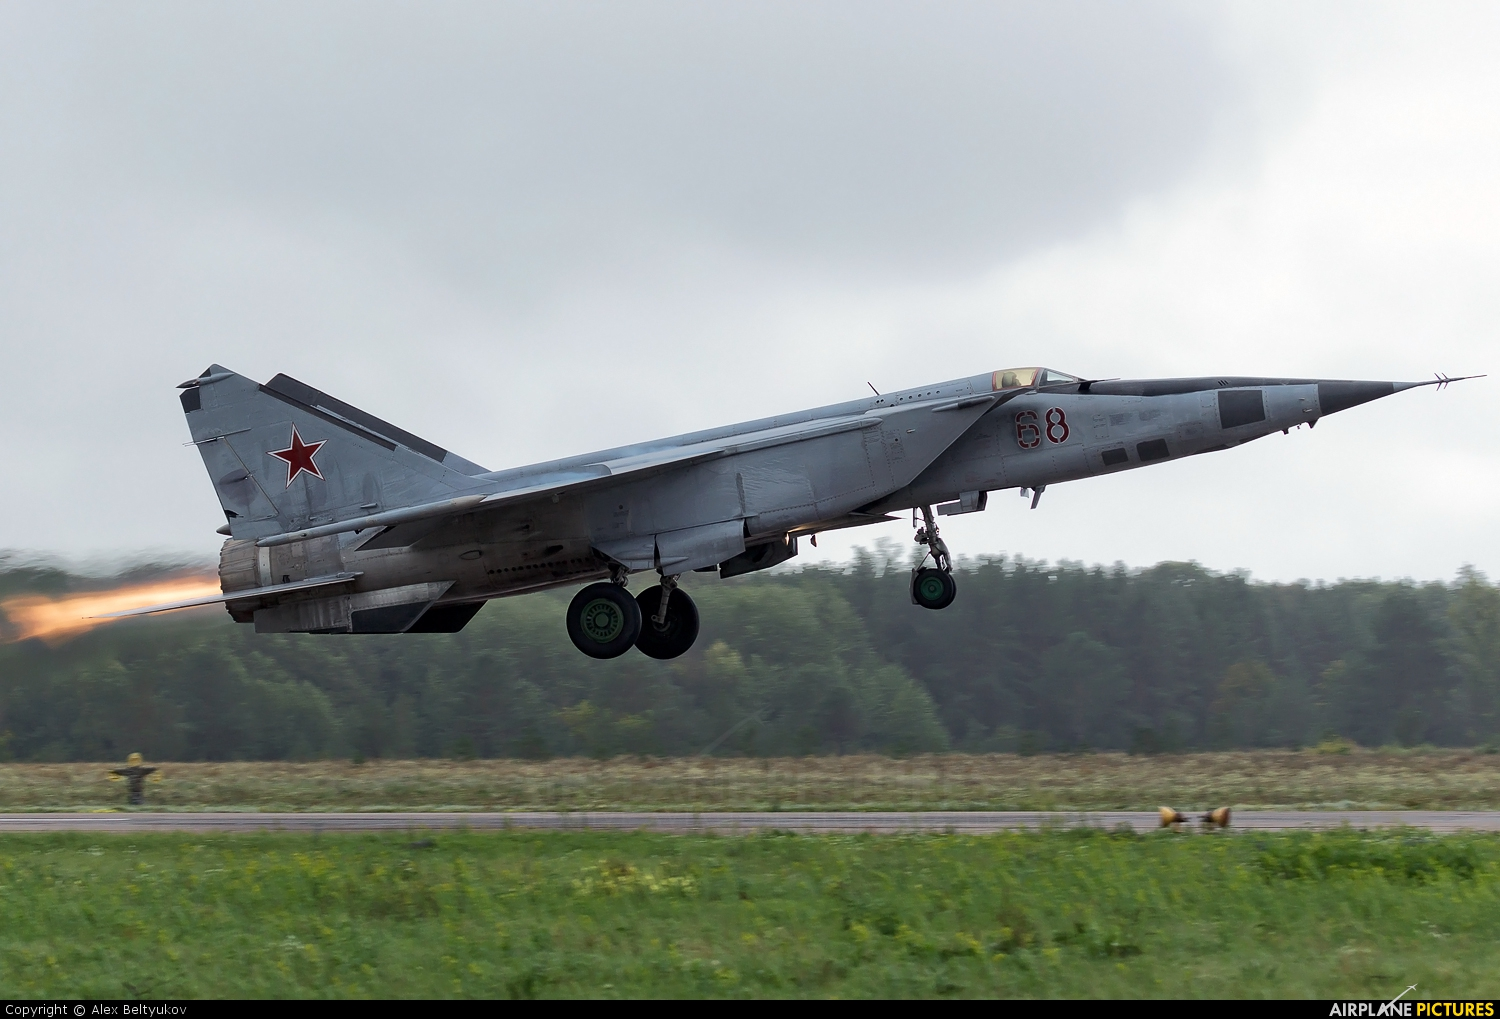 Russia - Air Force 68 aircraft at Undisclosed Location